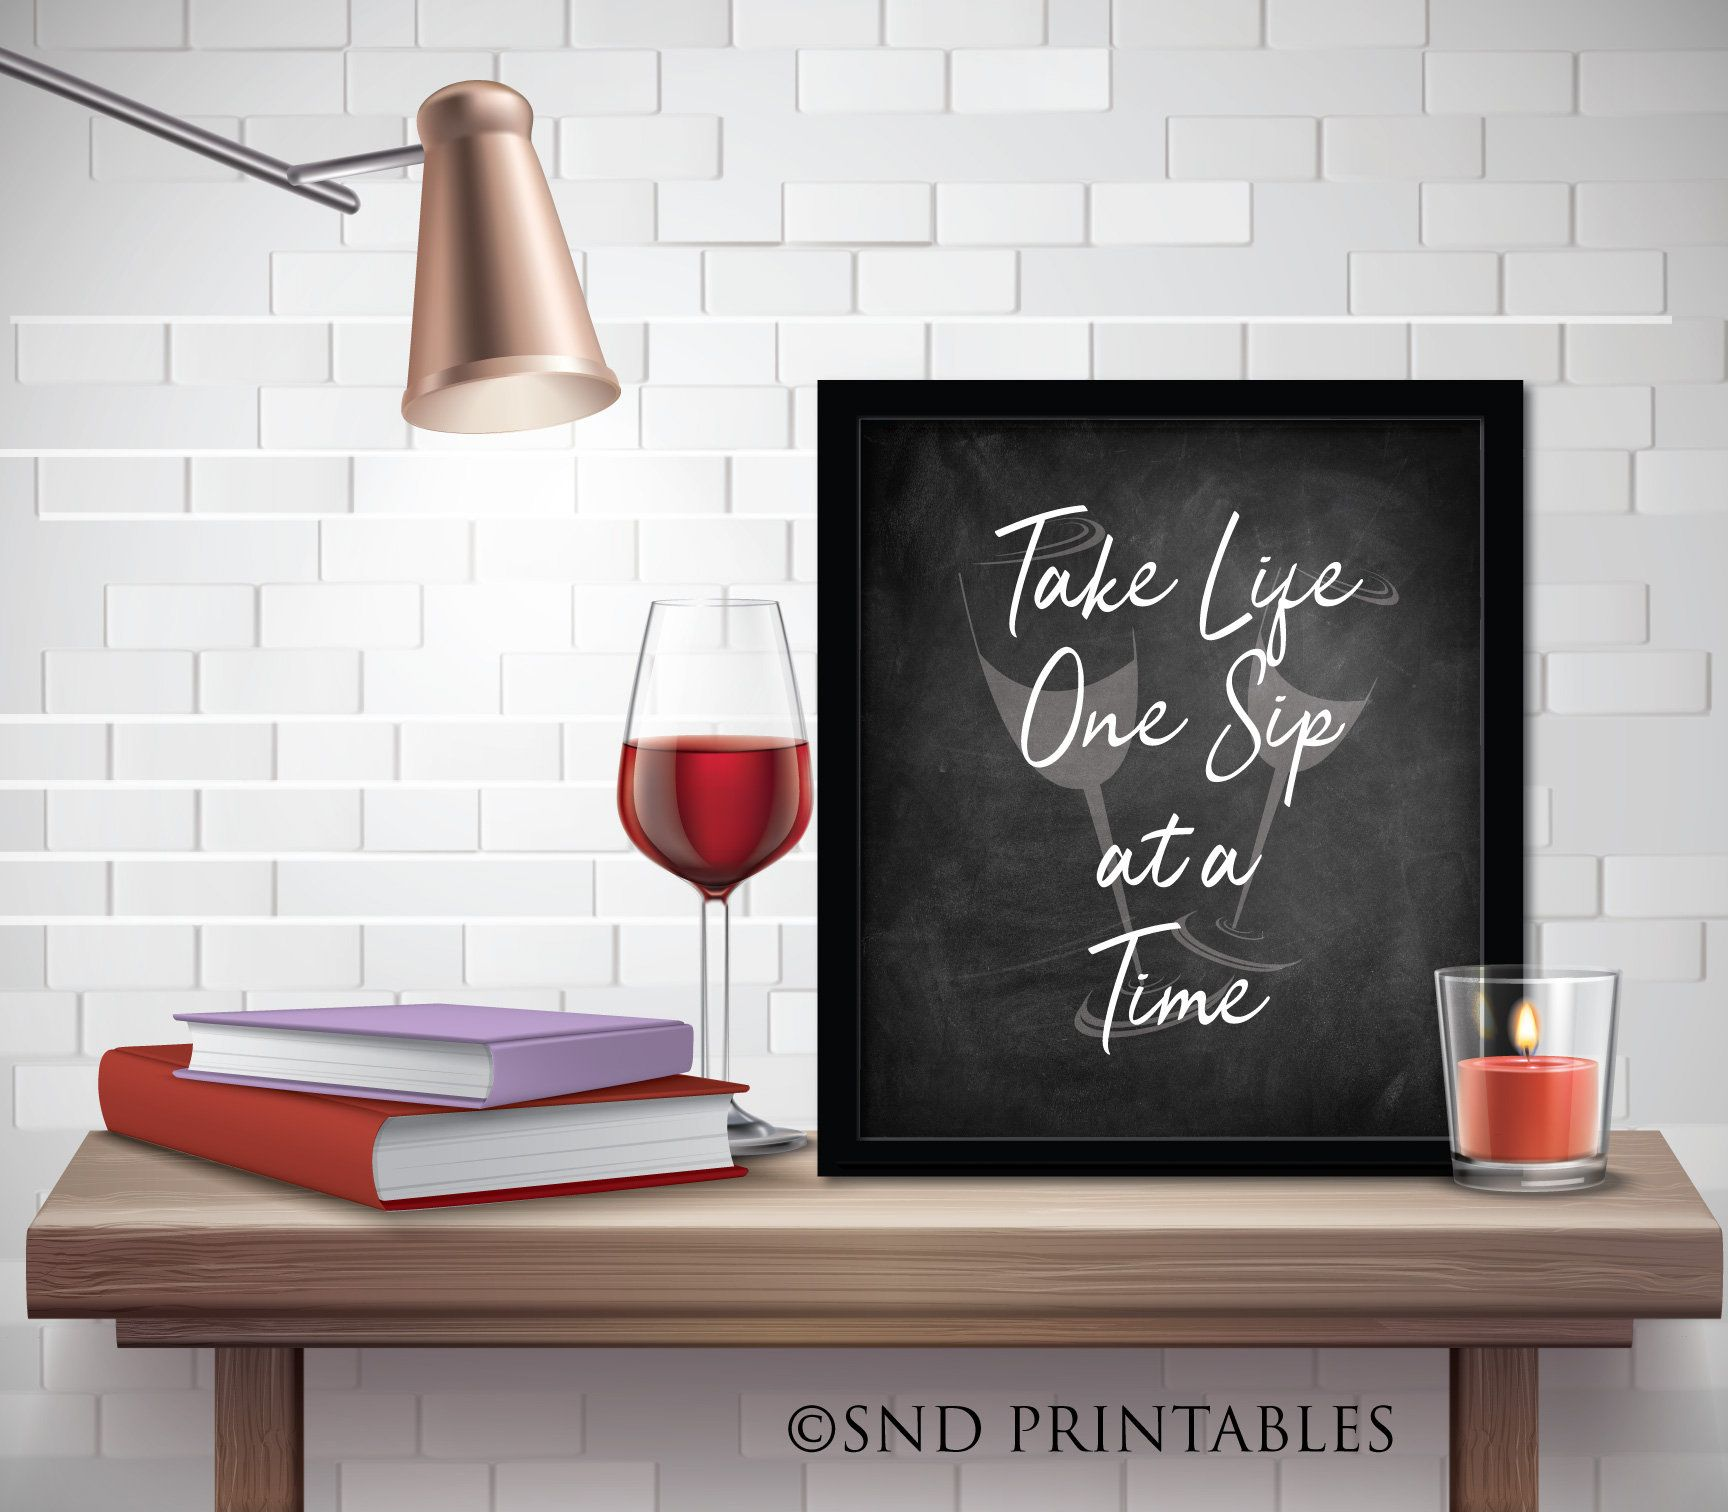 Take Life One Sip At A Time Art Printable In 8x10 And 12x16 Etsy In 2021 Wine Wall Art Bar Art Wine Wall